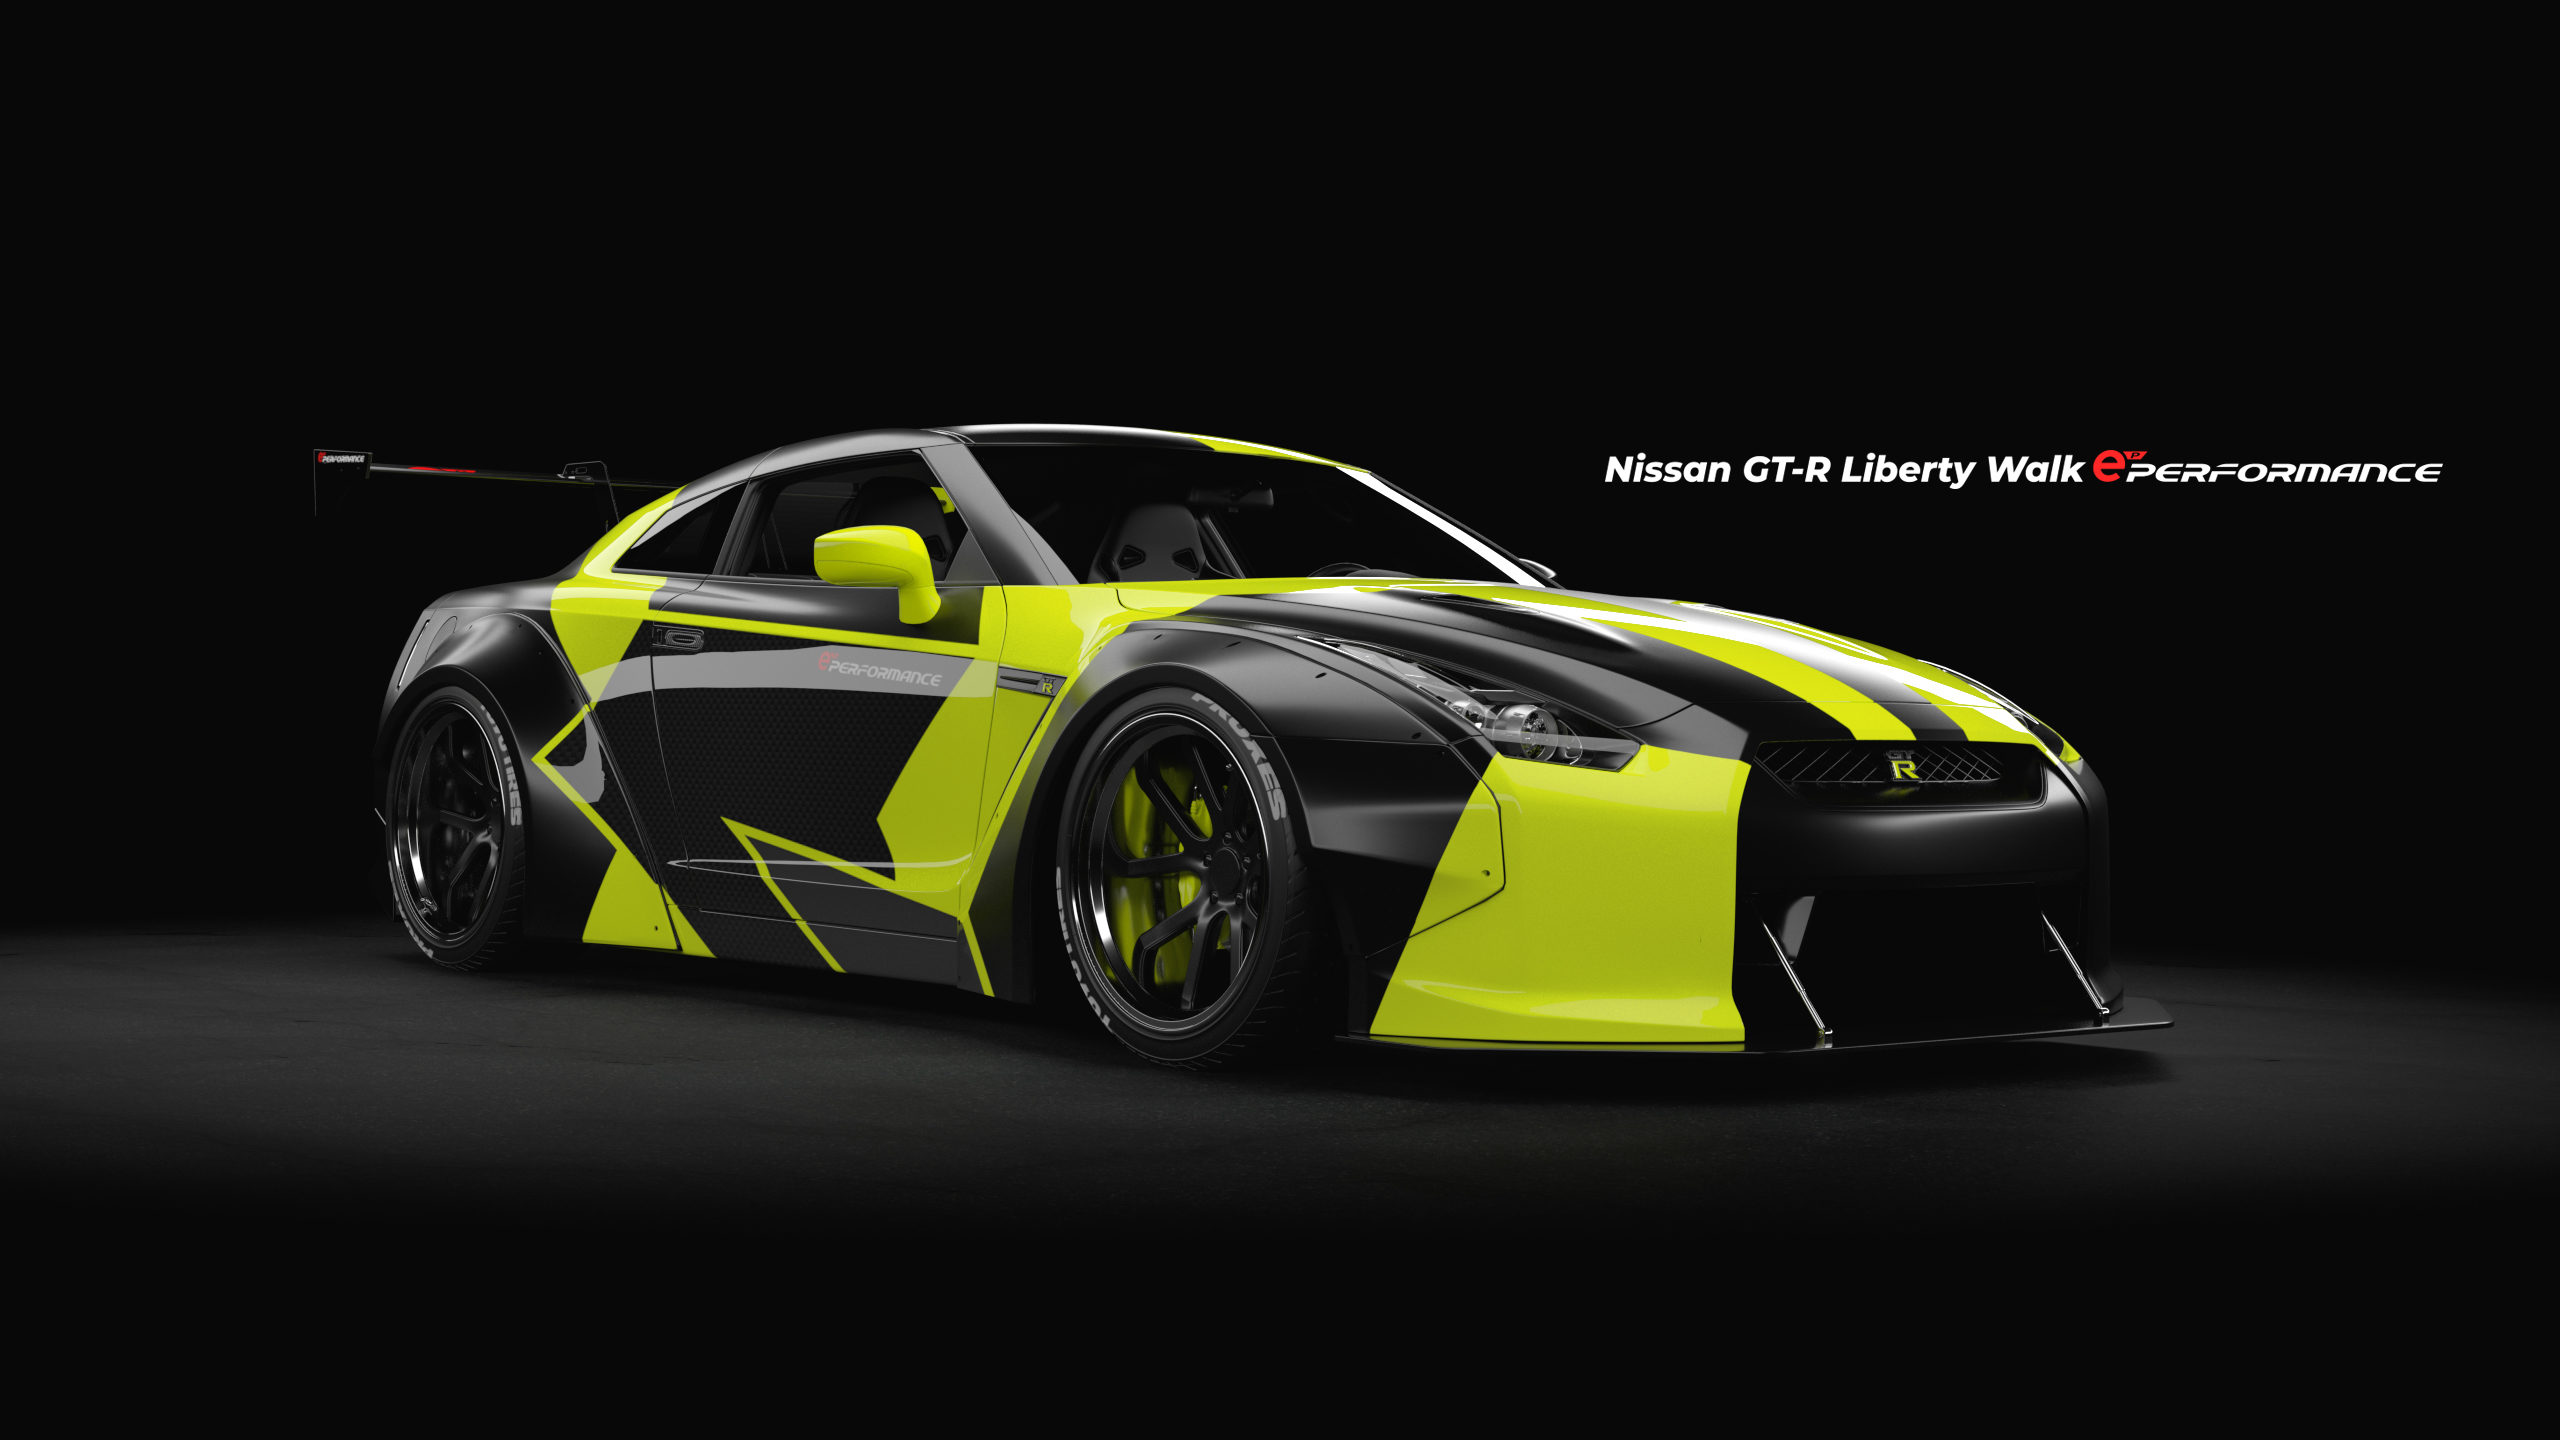 Are Your Looking For Best Car Wrap Design For Your Nissan Gt R